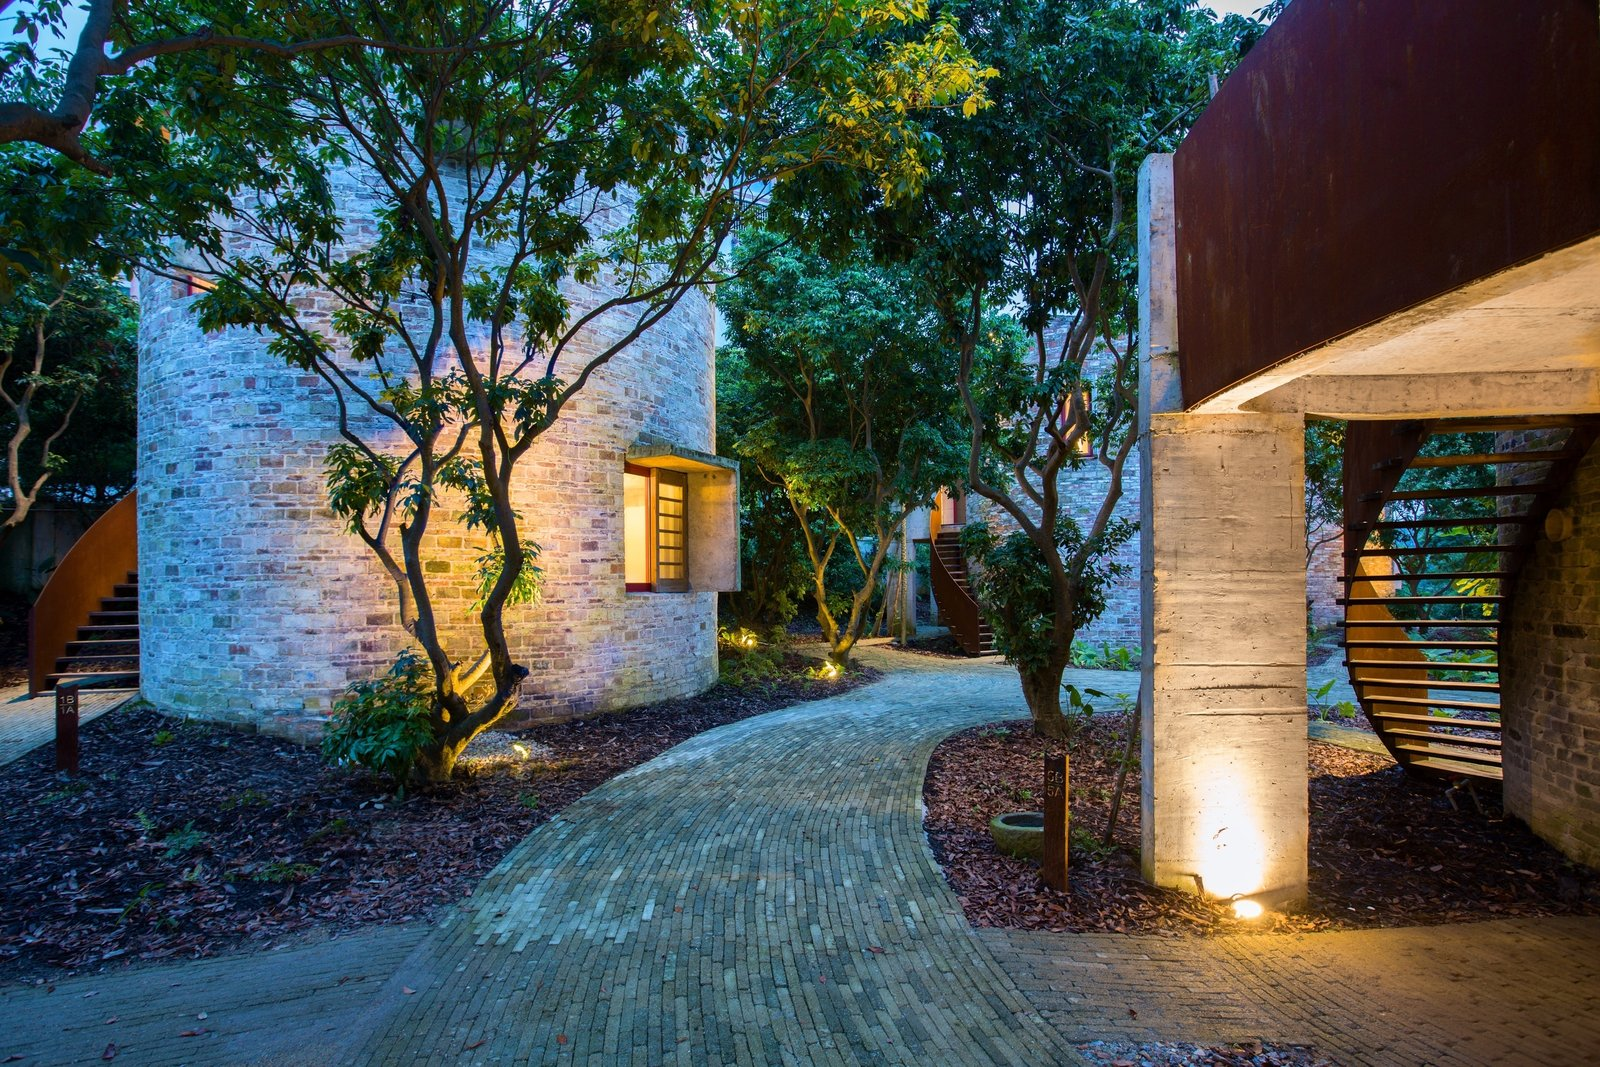 The Dome Home is part of a small community that also features seven round houses designed to accommodate designers and visitors. These round towers are all clad in reclaimed bricks. The Dome Home's visual cues continue throughout the village, manifesting themselves in the form of curving paths and staircases.